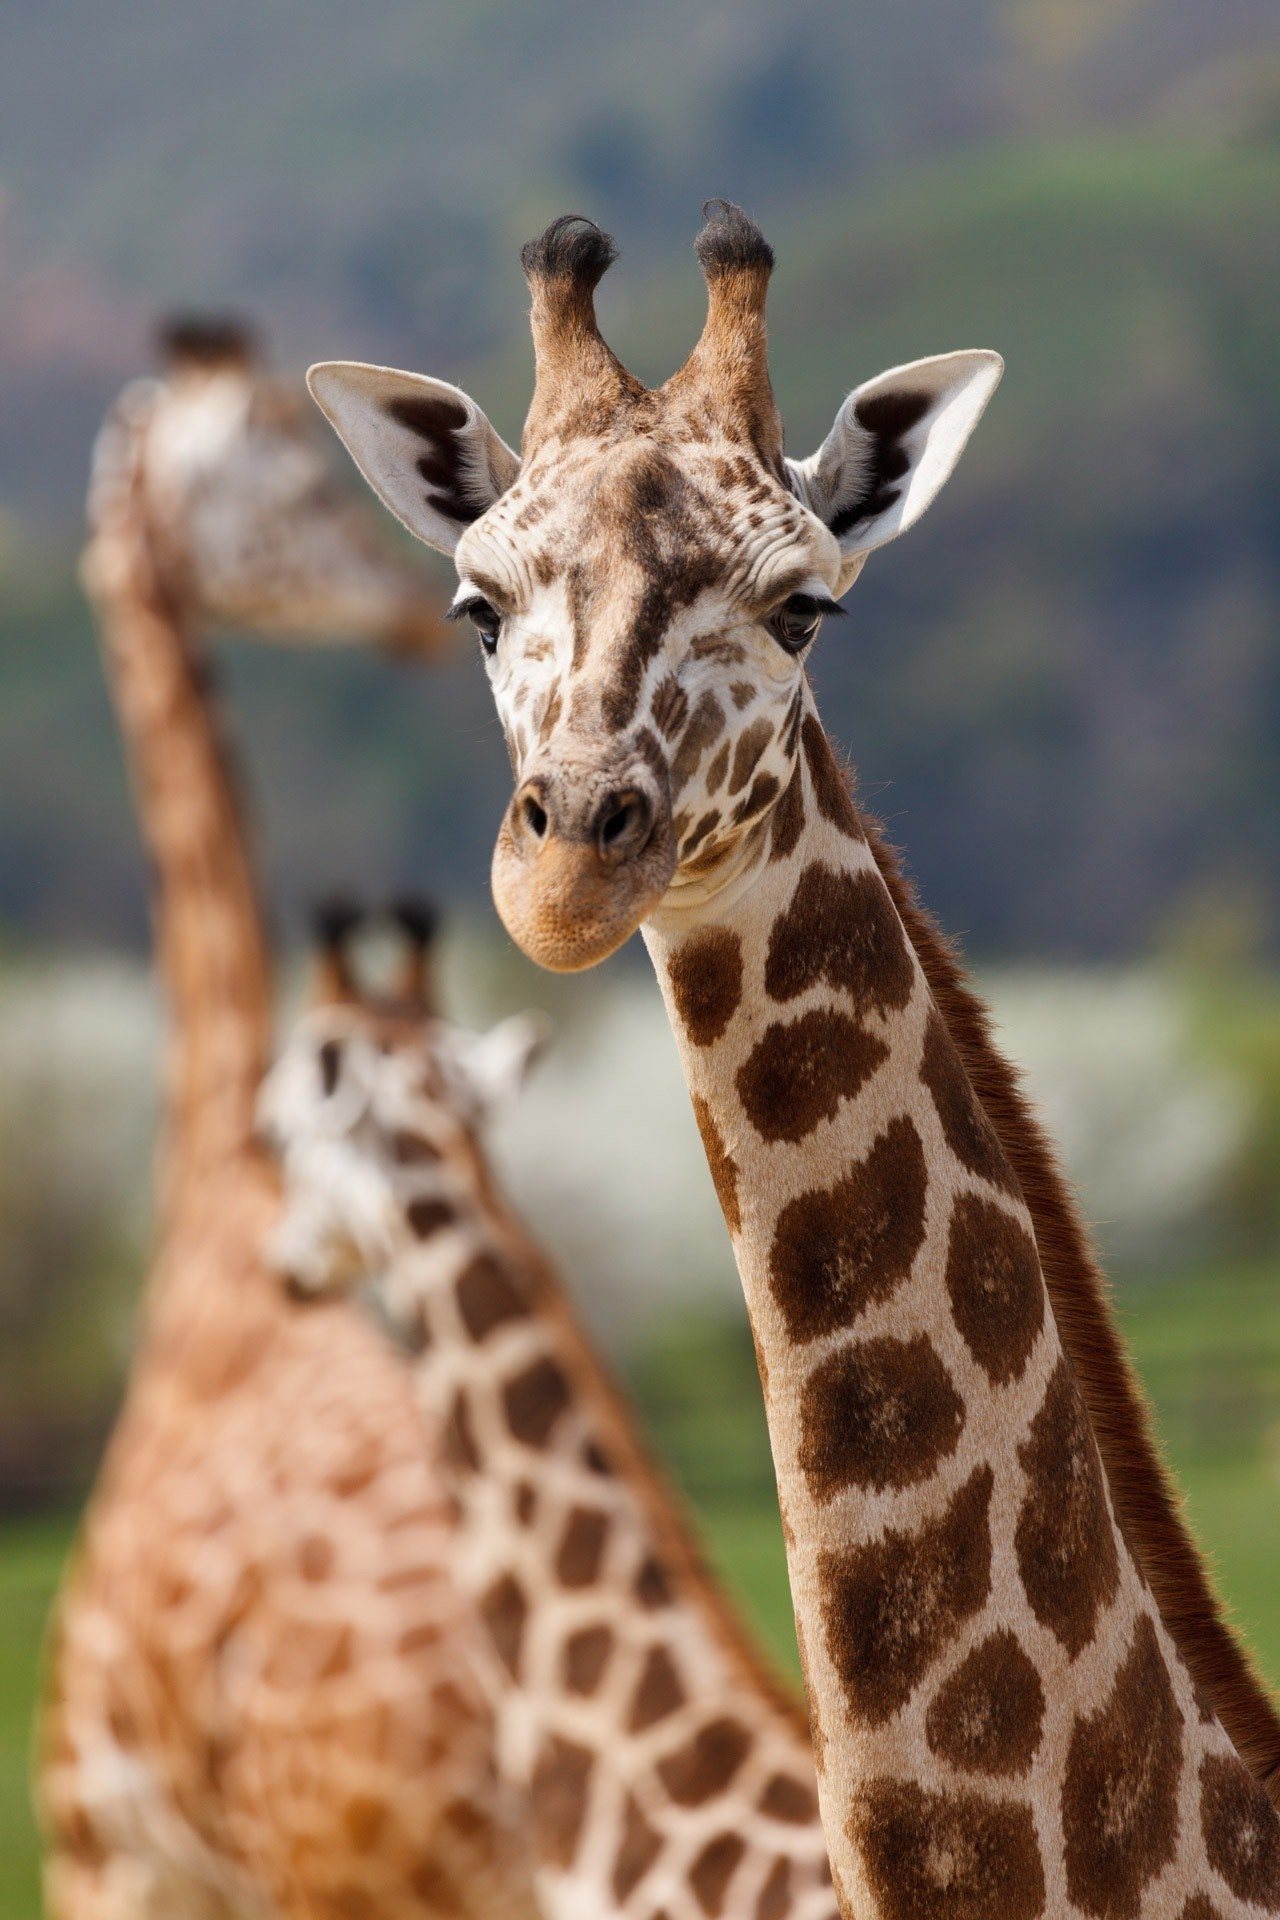 A picture of a giraffe. | Source: Pexels